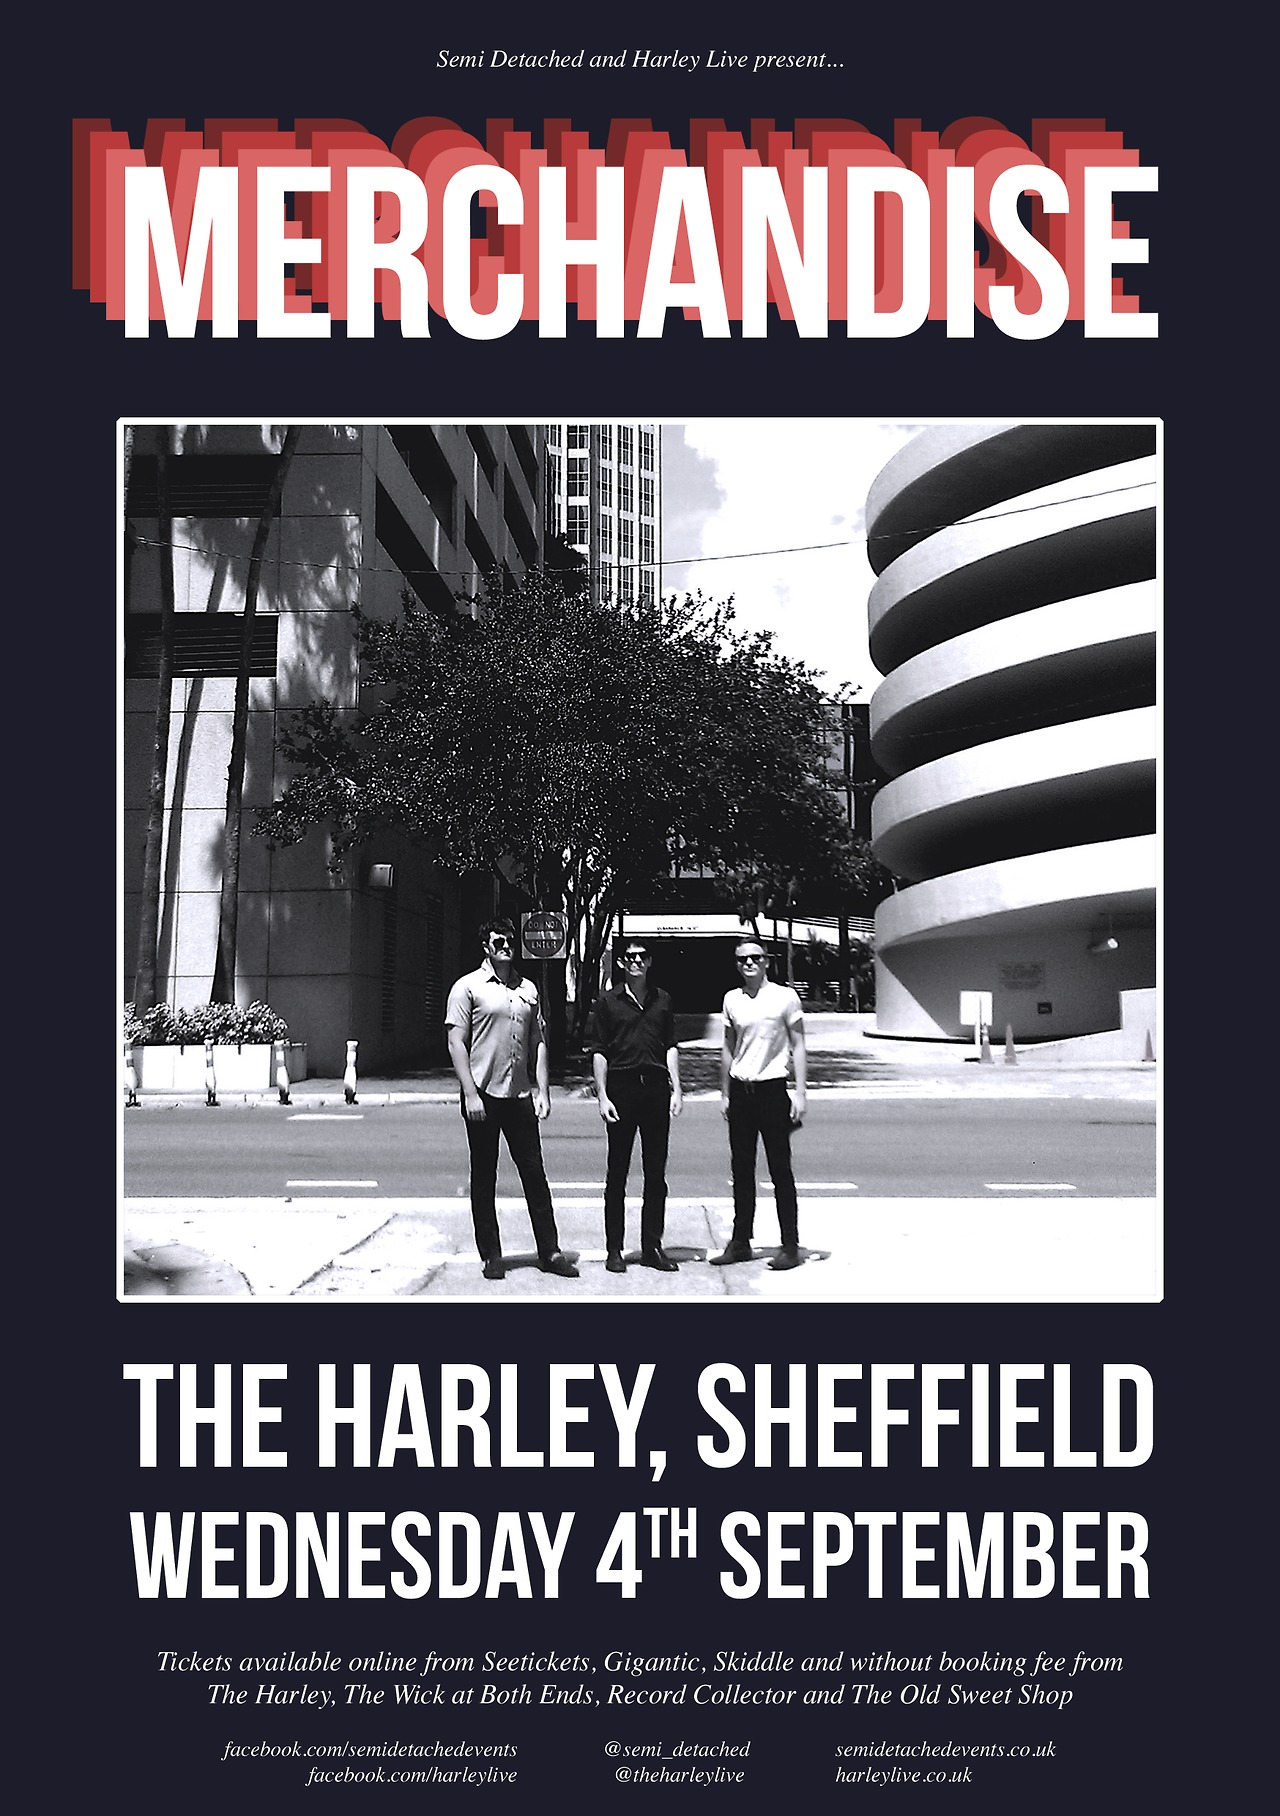 MERCHANDISE play The Harley Sheffield, Wednesday 4th September.